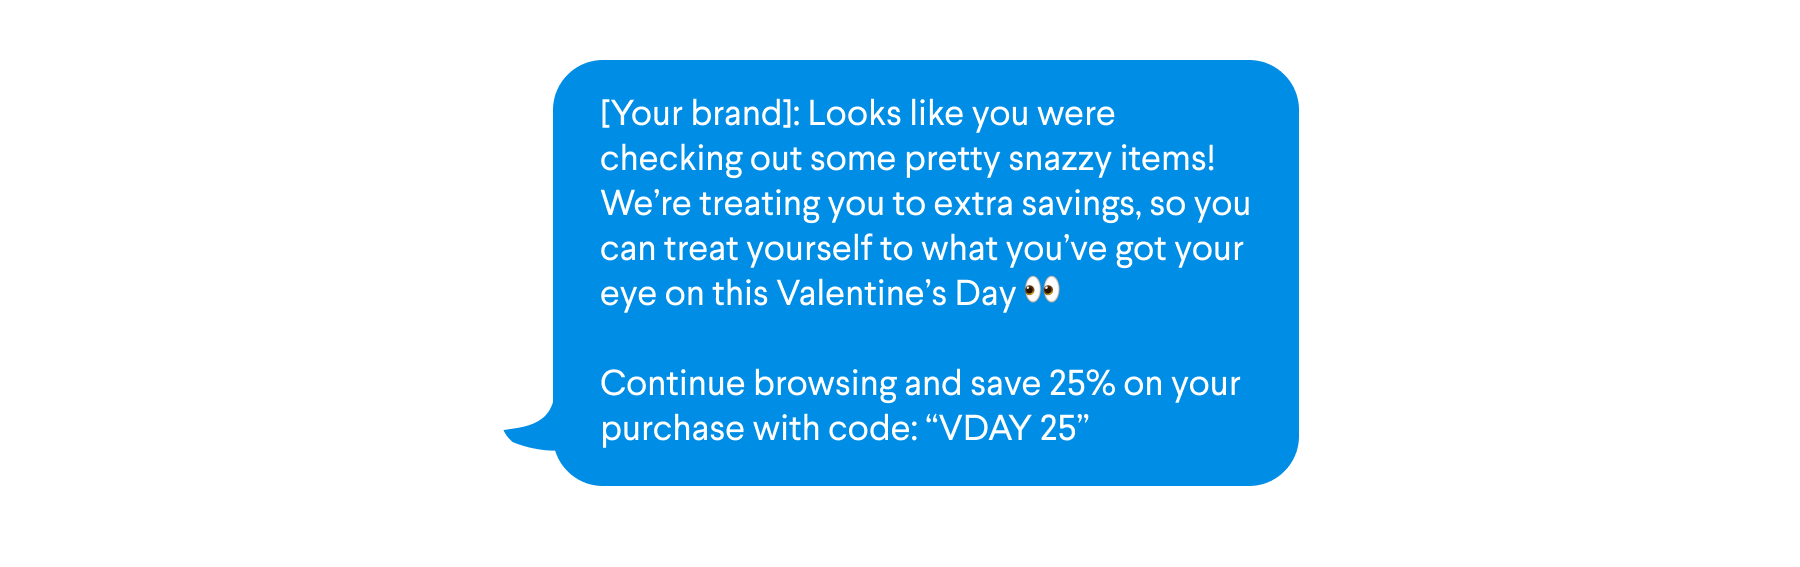 Sample text for SMS campaign on Valentine's Day with new offer for people who clicked but didn't purchase